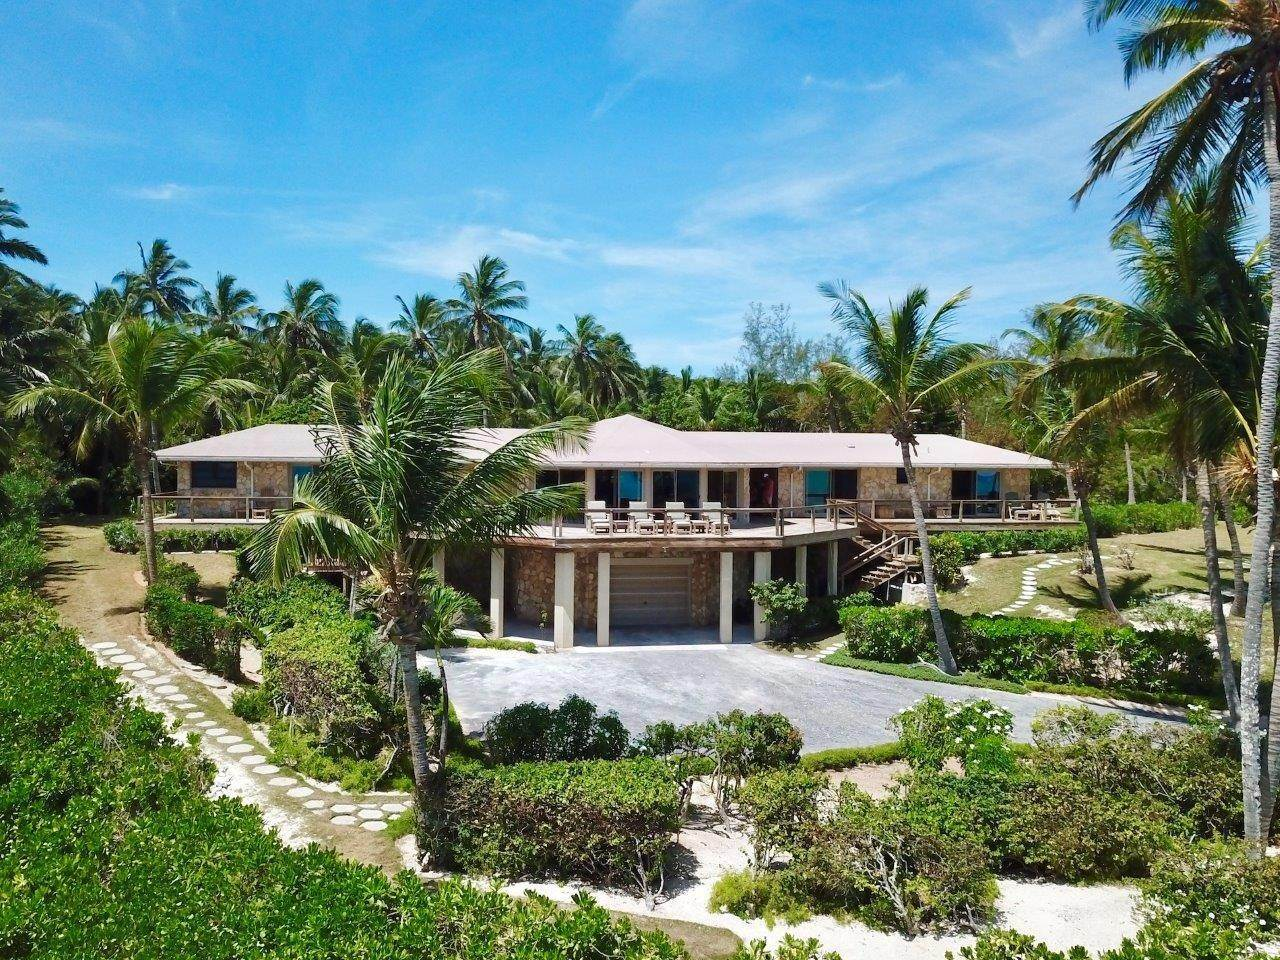 Single Family Homes for Sale at Governor's Harbour Beach House - MLS 41889 Governors Harbour, Eleuthera, Bahamas